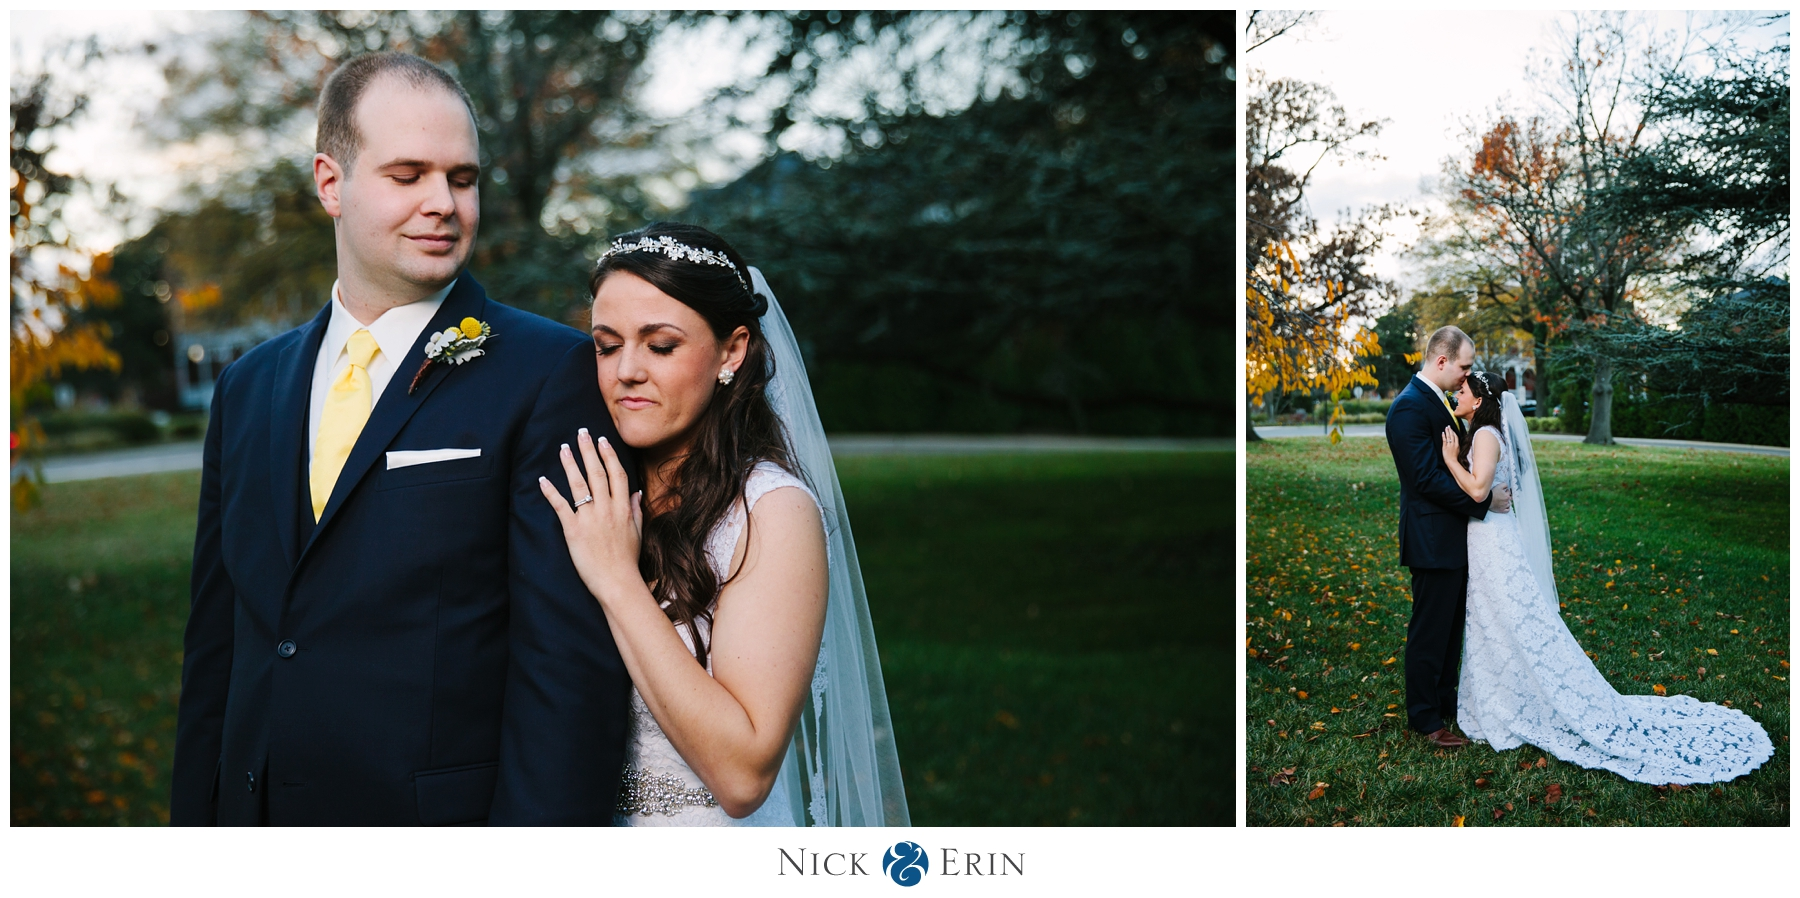 Donner_Photography_Fort Myer Wedding_Katie & Will_0038